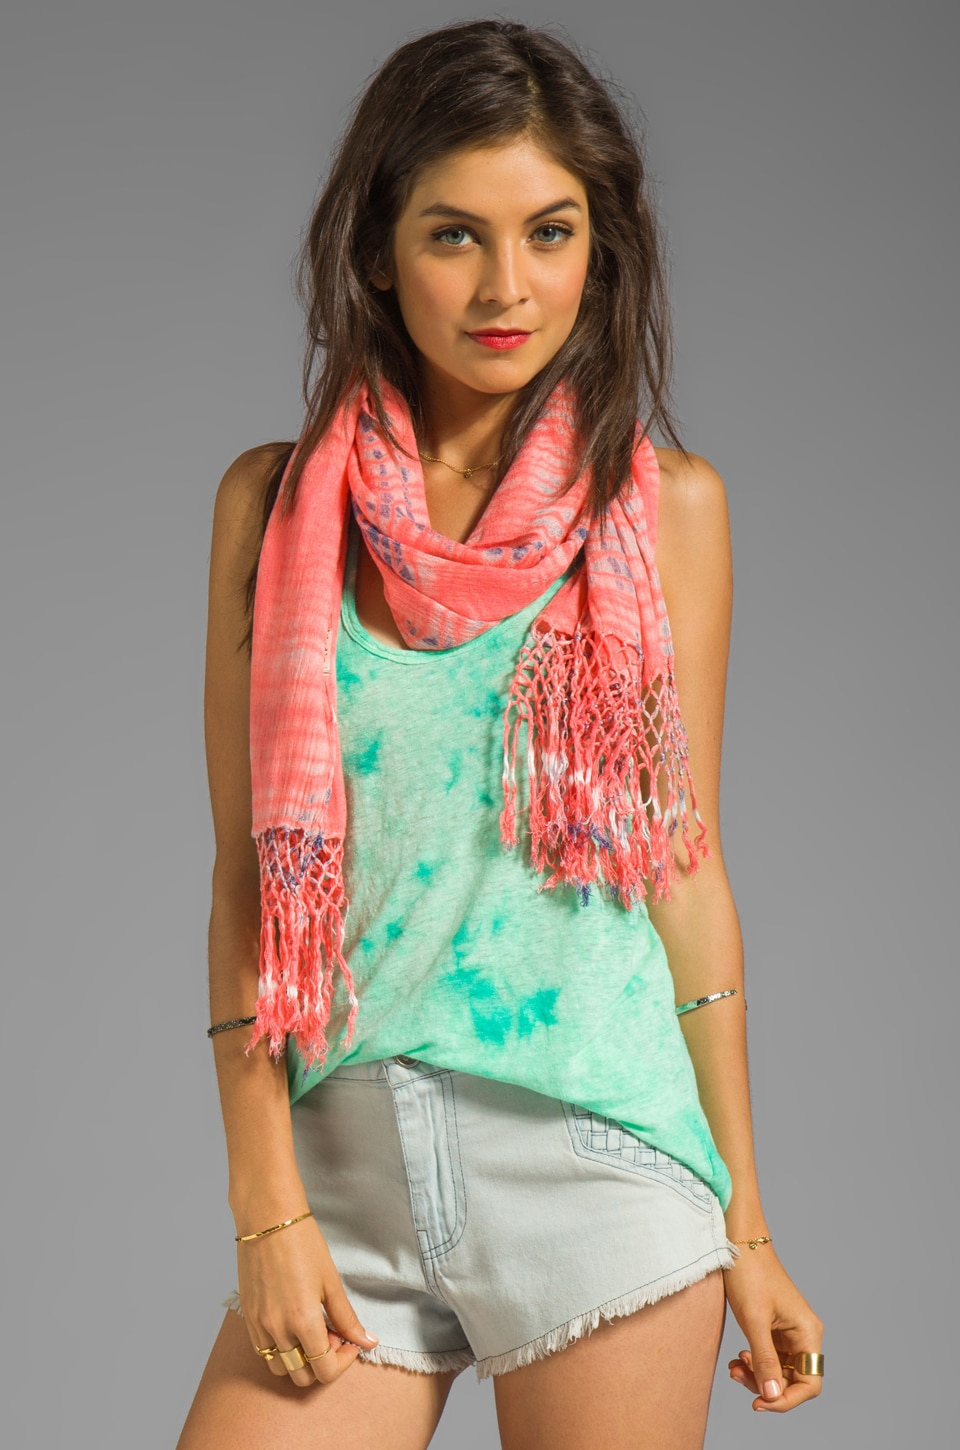 Gypsy 05 Alligator Vat Dye Scarf in Salmon